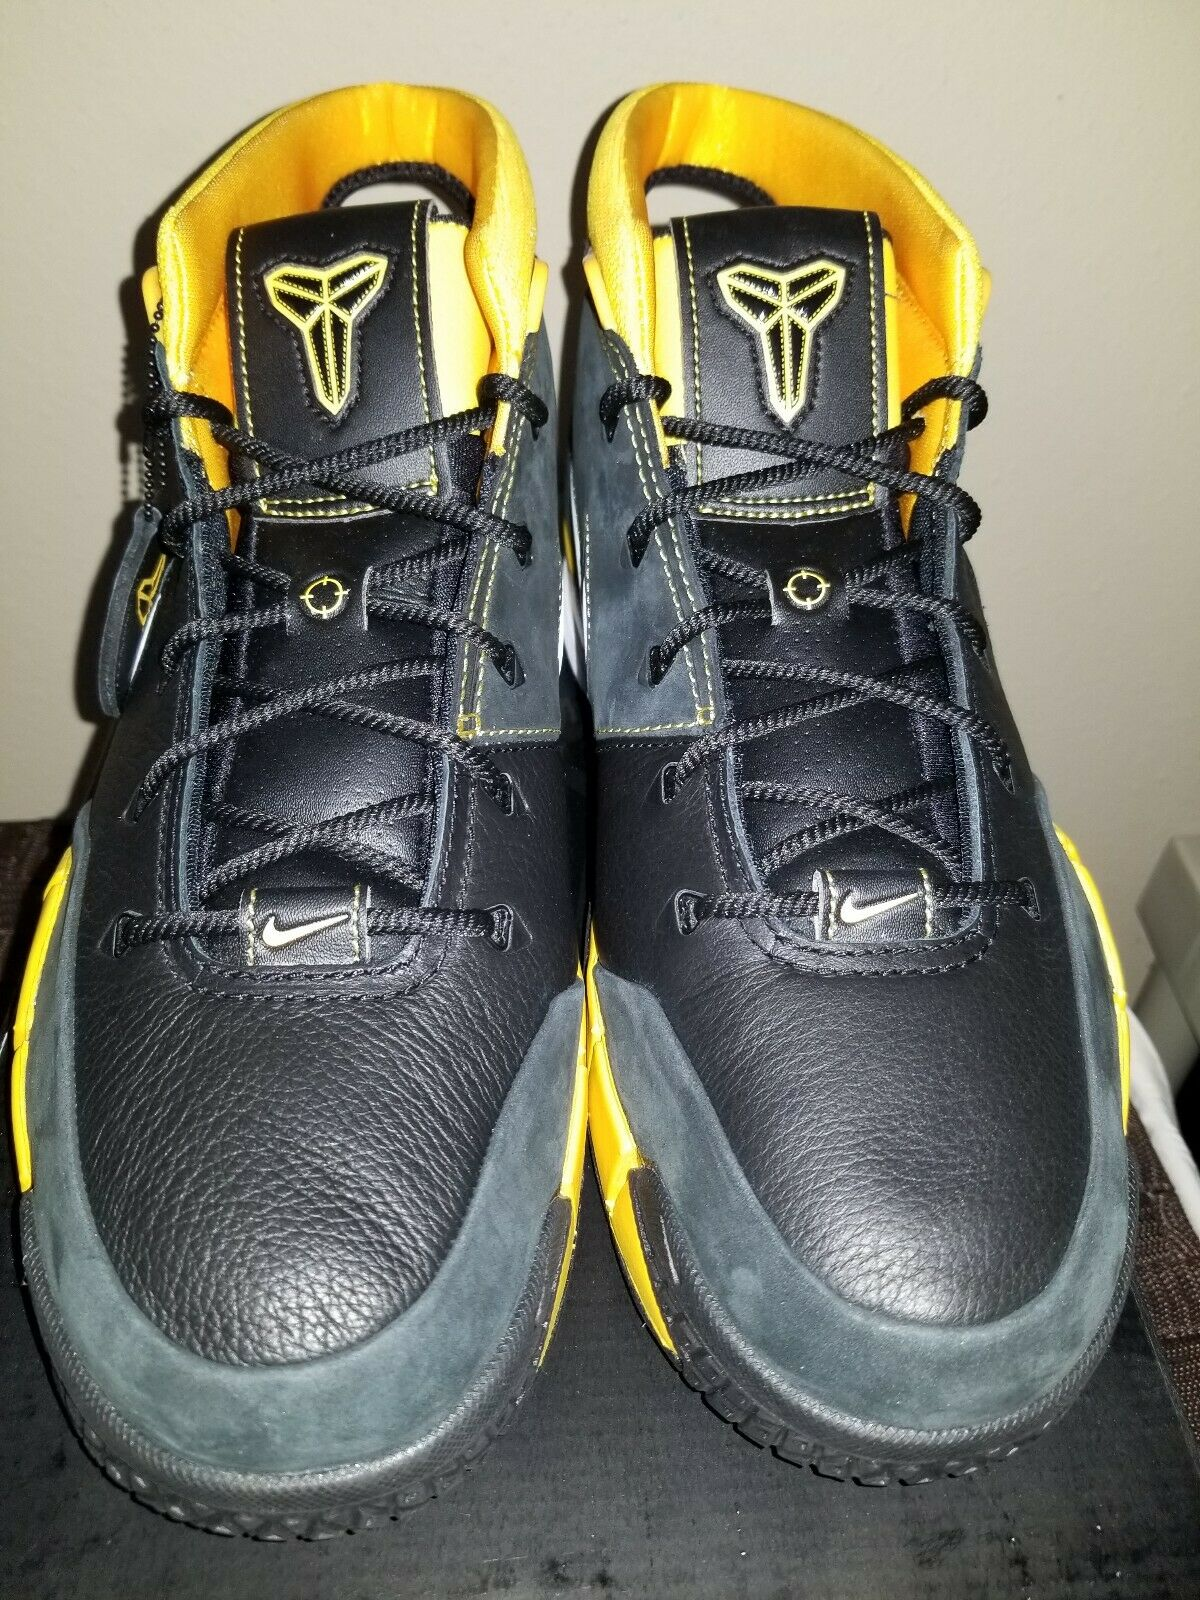 Nike Mens Kobe 1 Predro Size 11.5 Del Sol Black Yellow Varsity Maize